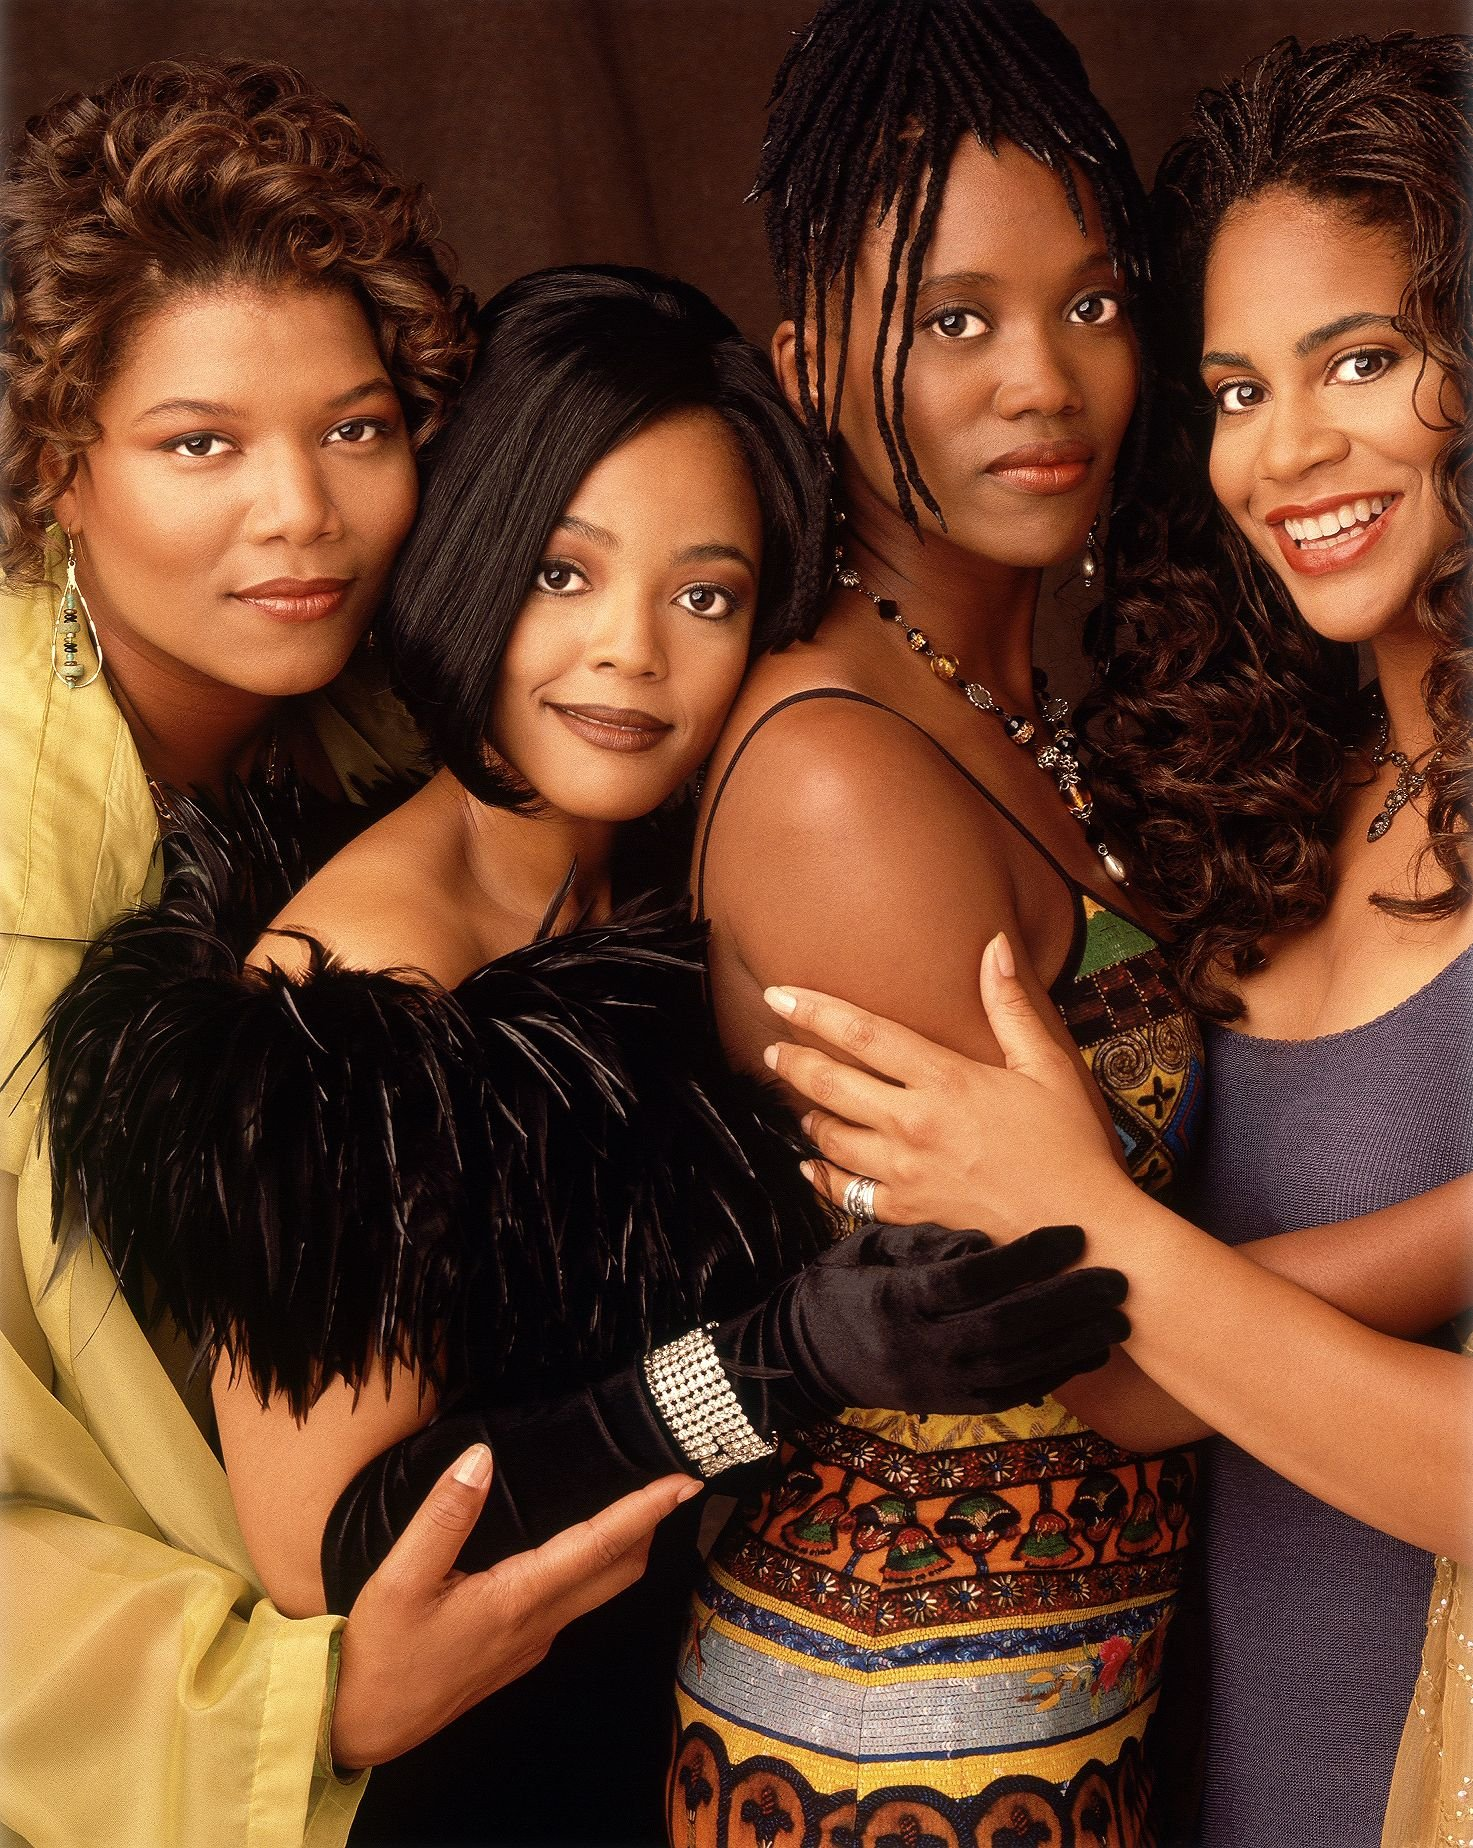 """Studio portrait of the cast of """"Living Single"""": The cast of Living Single: Queen Latifah, Kim Fields, Erika Alexander and Kim Coles in the mid 90s 